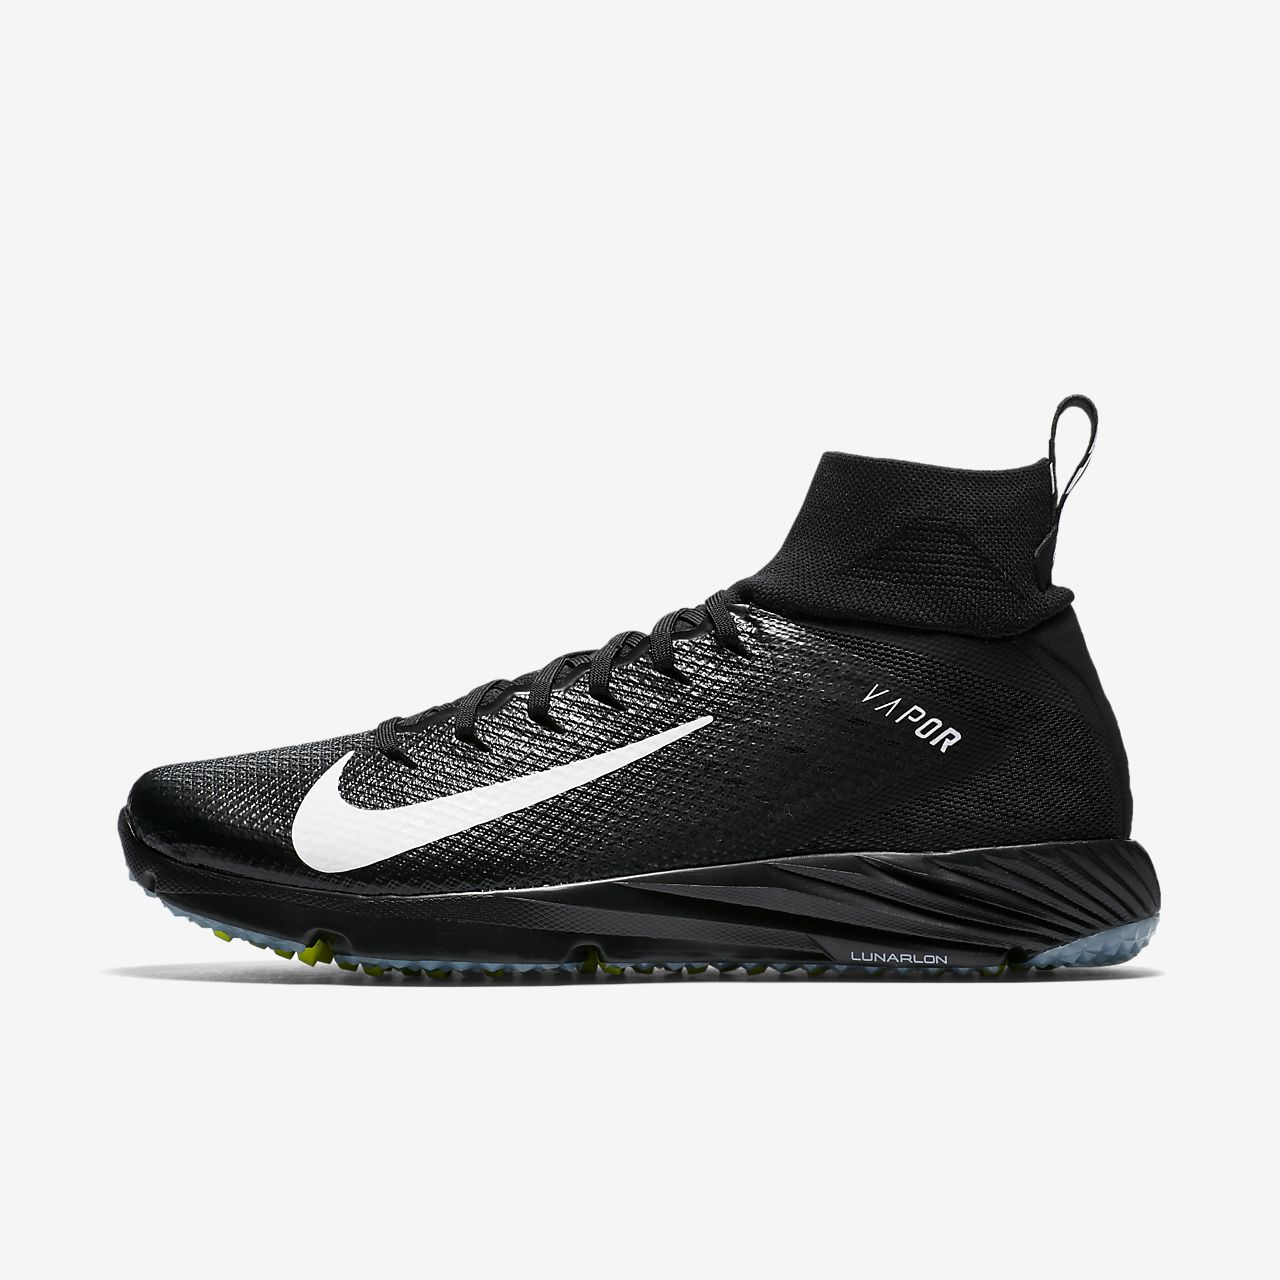 3a98355d4 Nike Vapor Untouchable Speed Turf 2 Men s Football Cleat. Nike.com